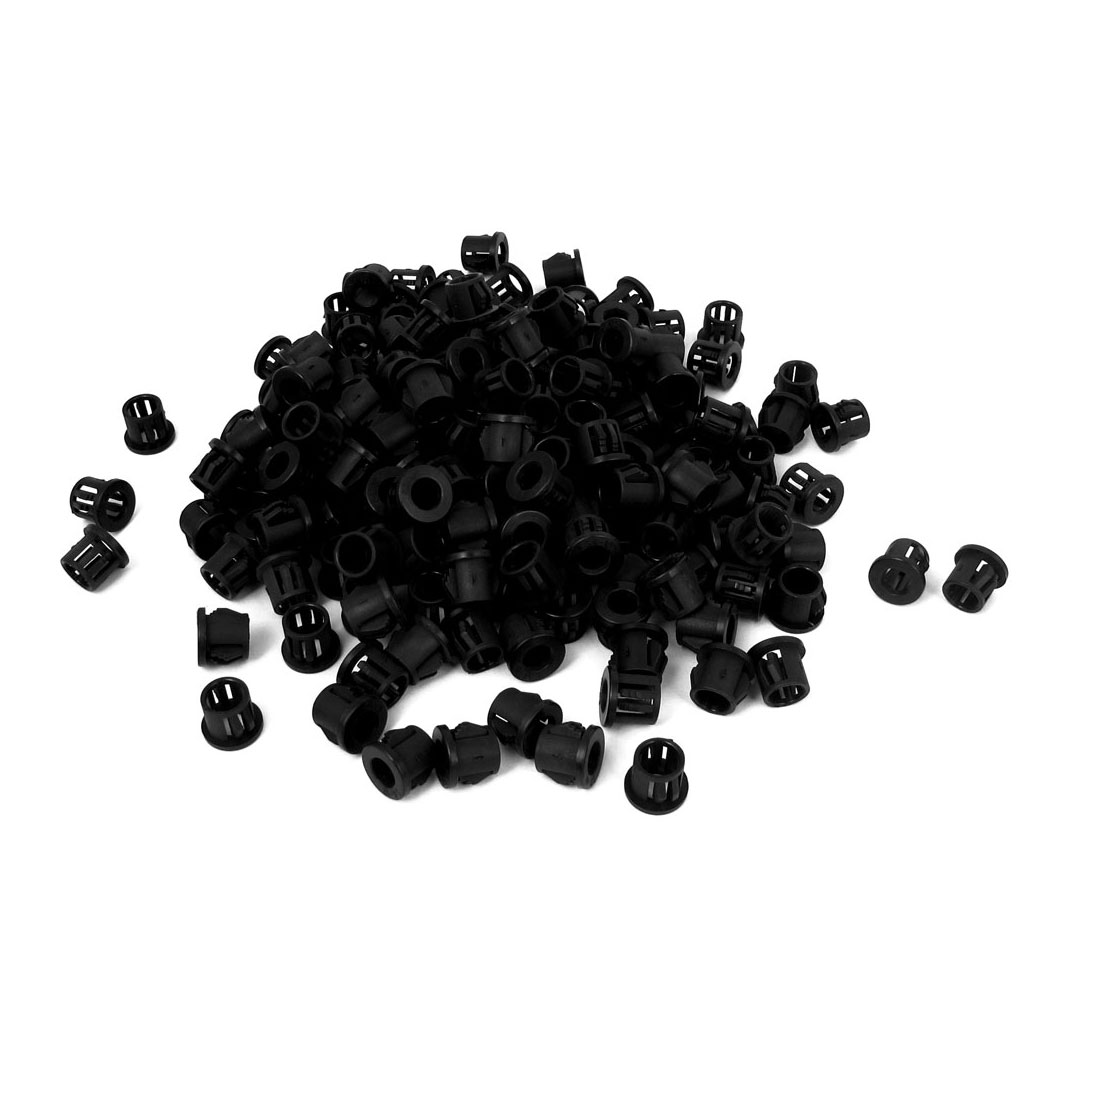 Unique Bargains Plastic 10mm Cable Hose Snap Locking Bushing Protective Grommet 500Pcs Black